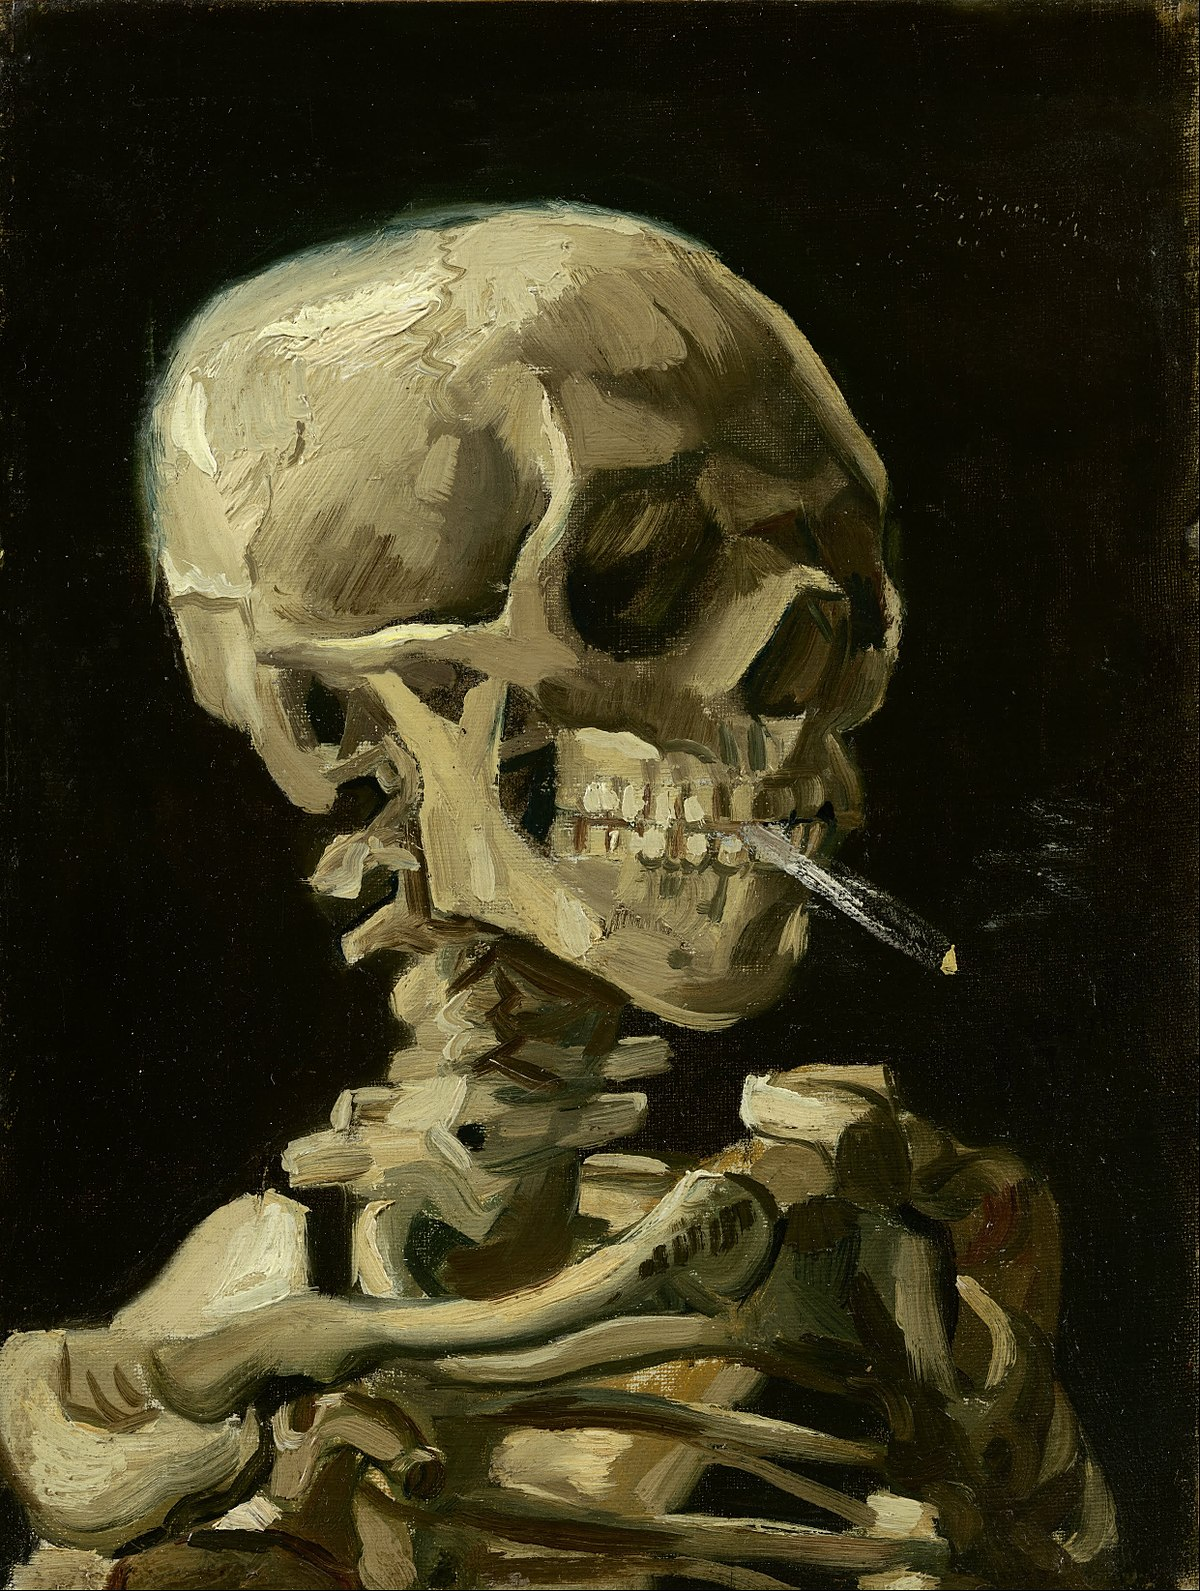 1200px-Vincent_van_Gogh_-_Head_of_a_skeleton_with_a_burning_cigarette_-_Google_Art_Project.jpg